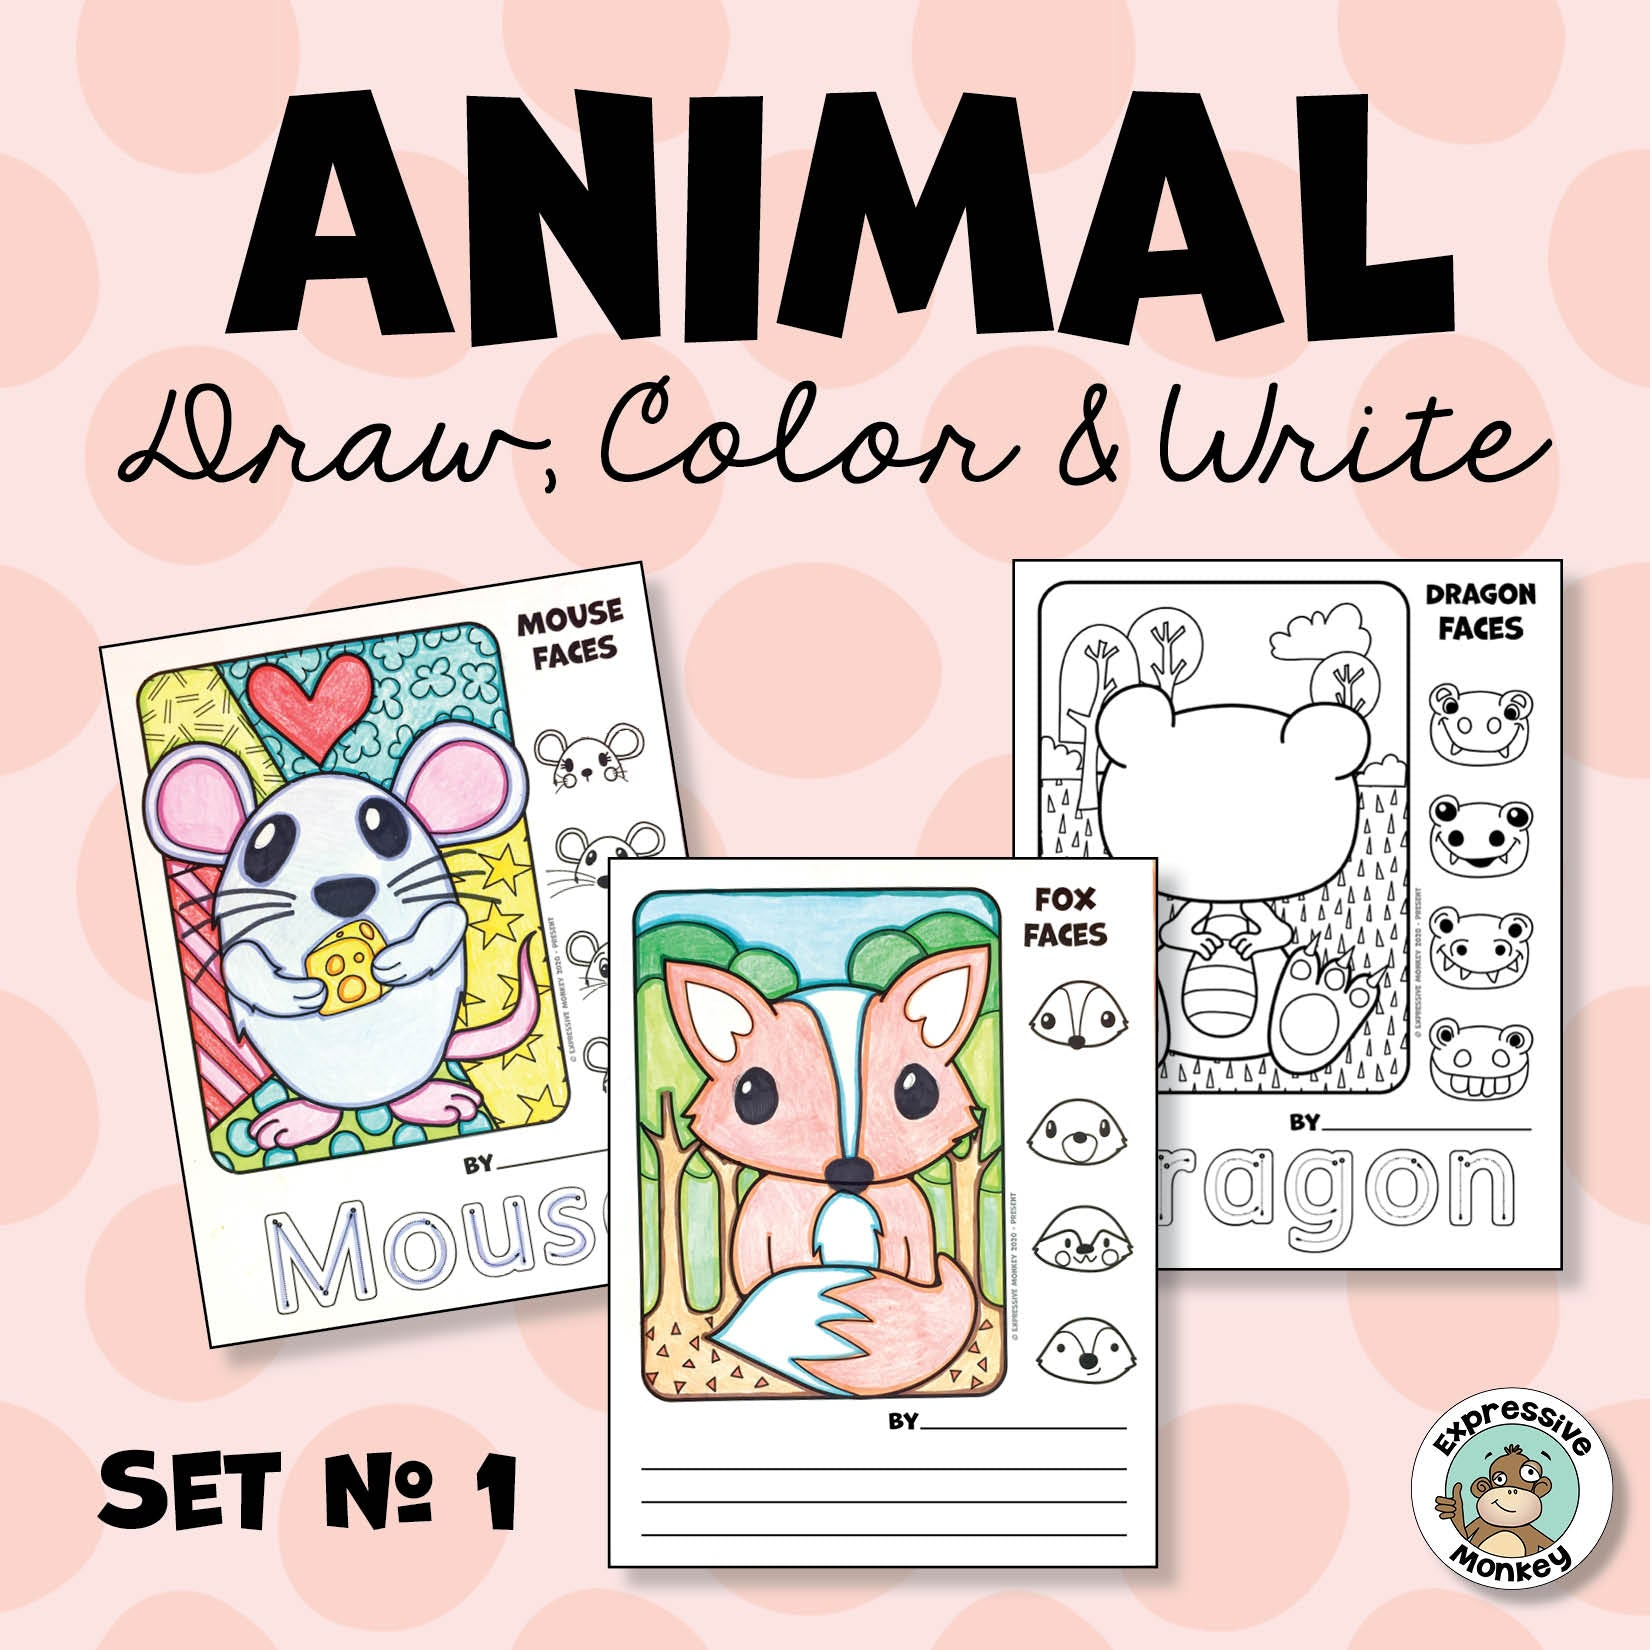 Animal Draw, Color & Write 1 - Finish the Drawing Pages